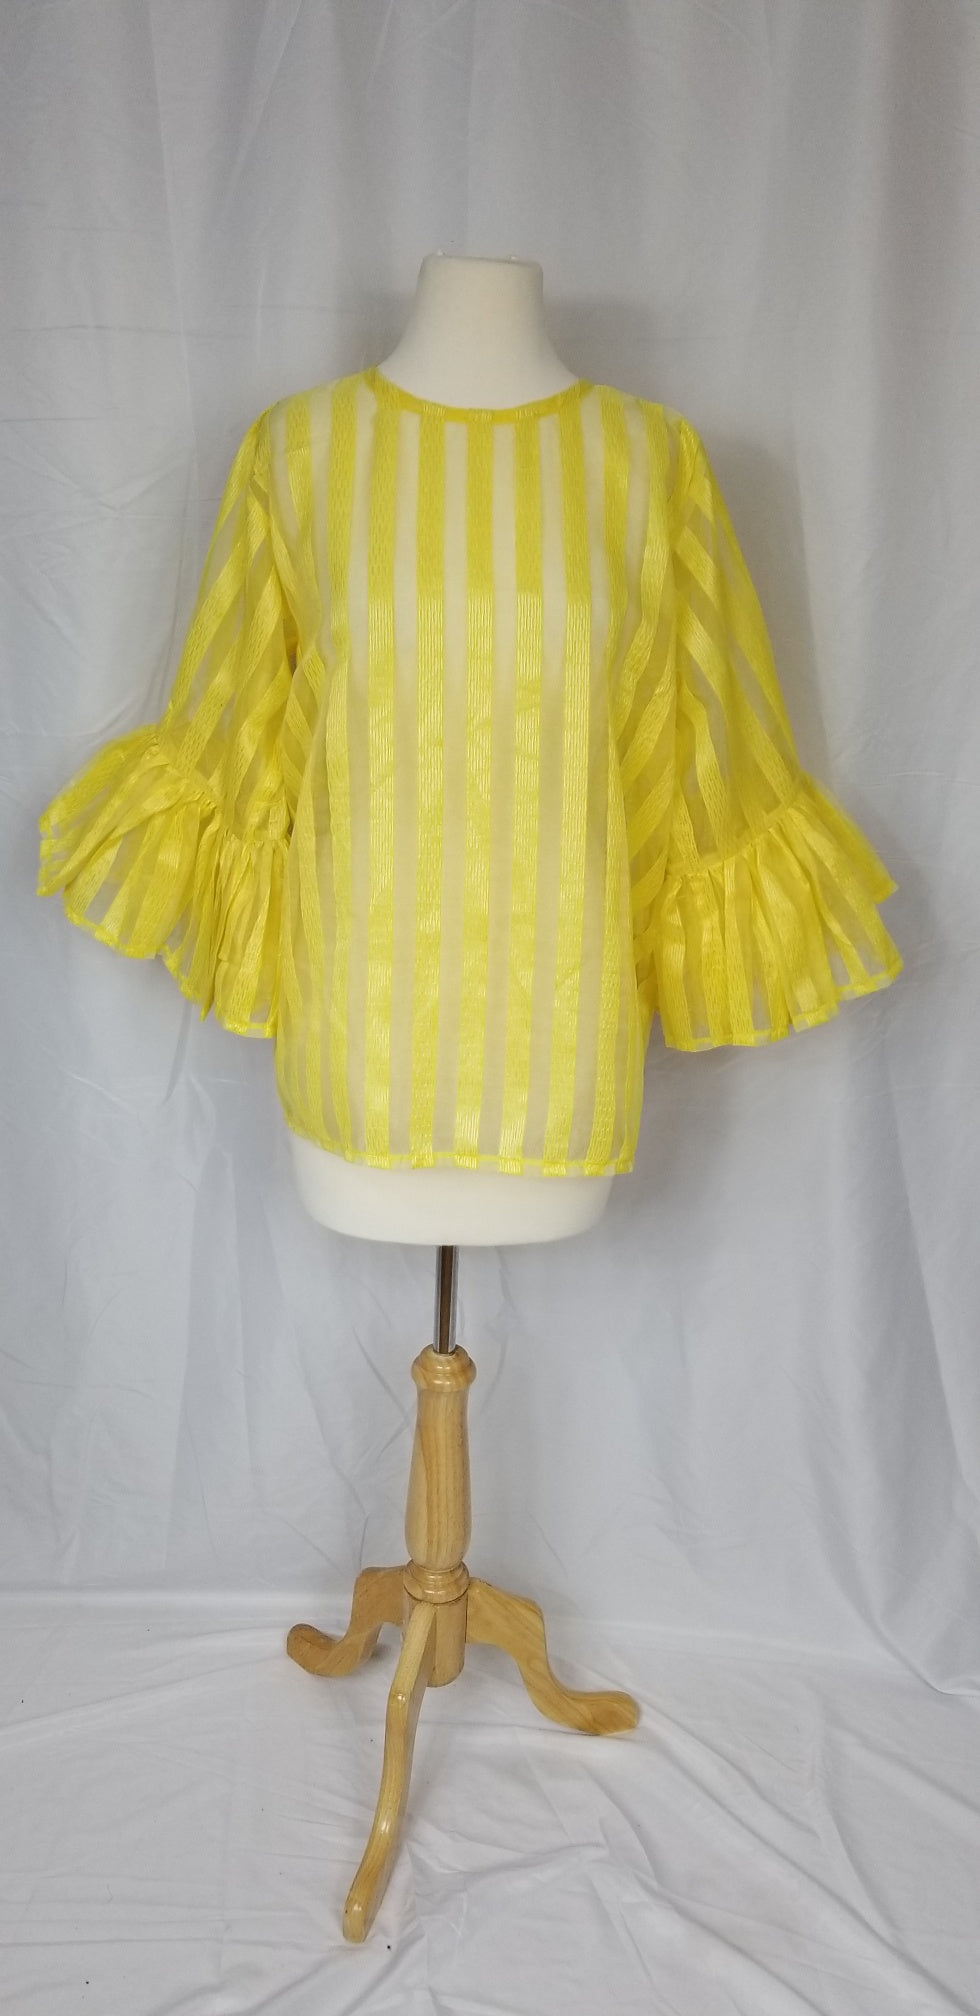 OYIN organza blouse with trumpet sleeves